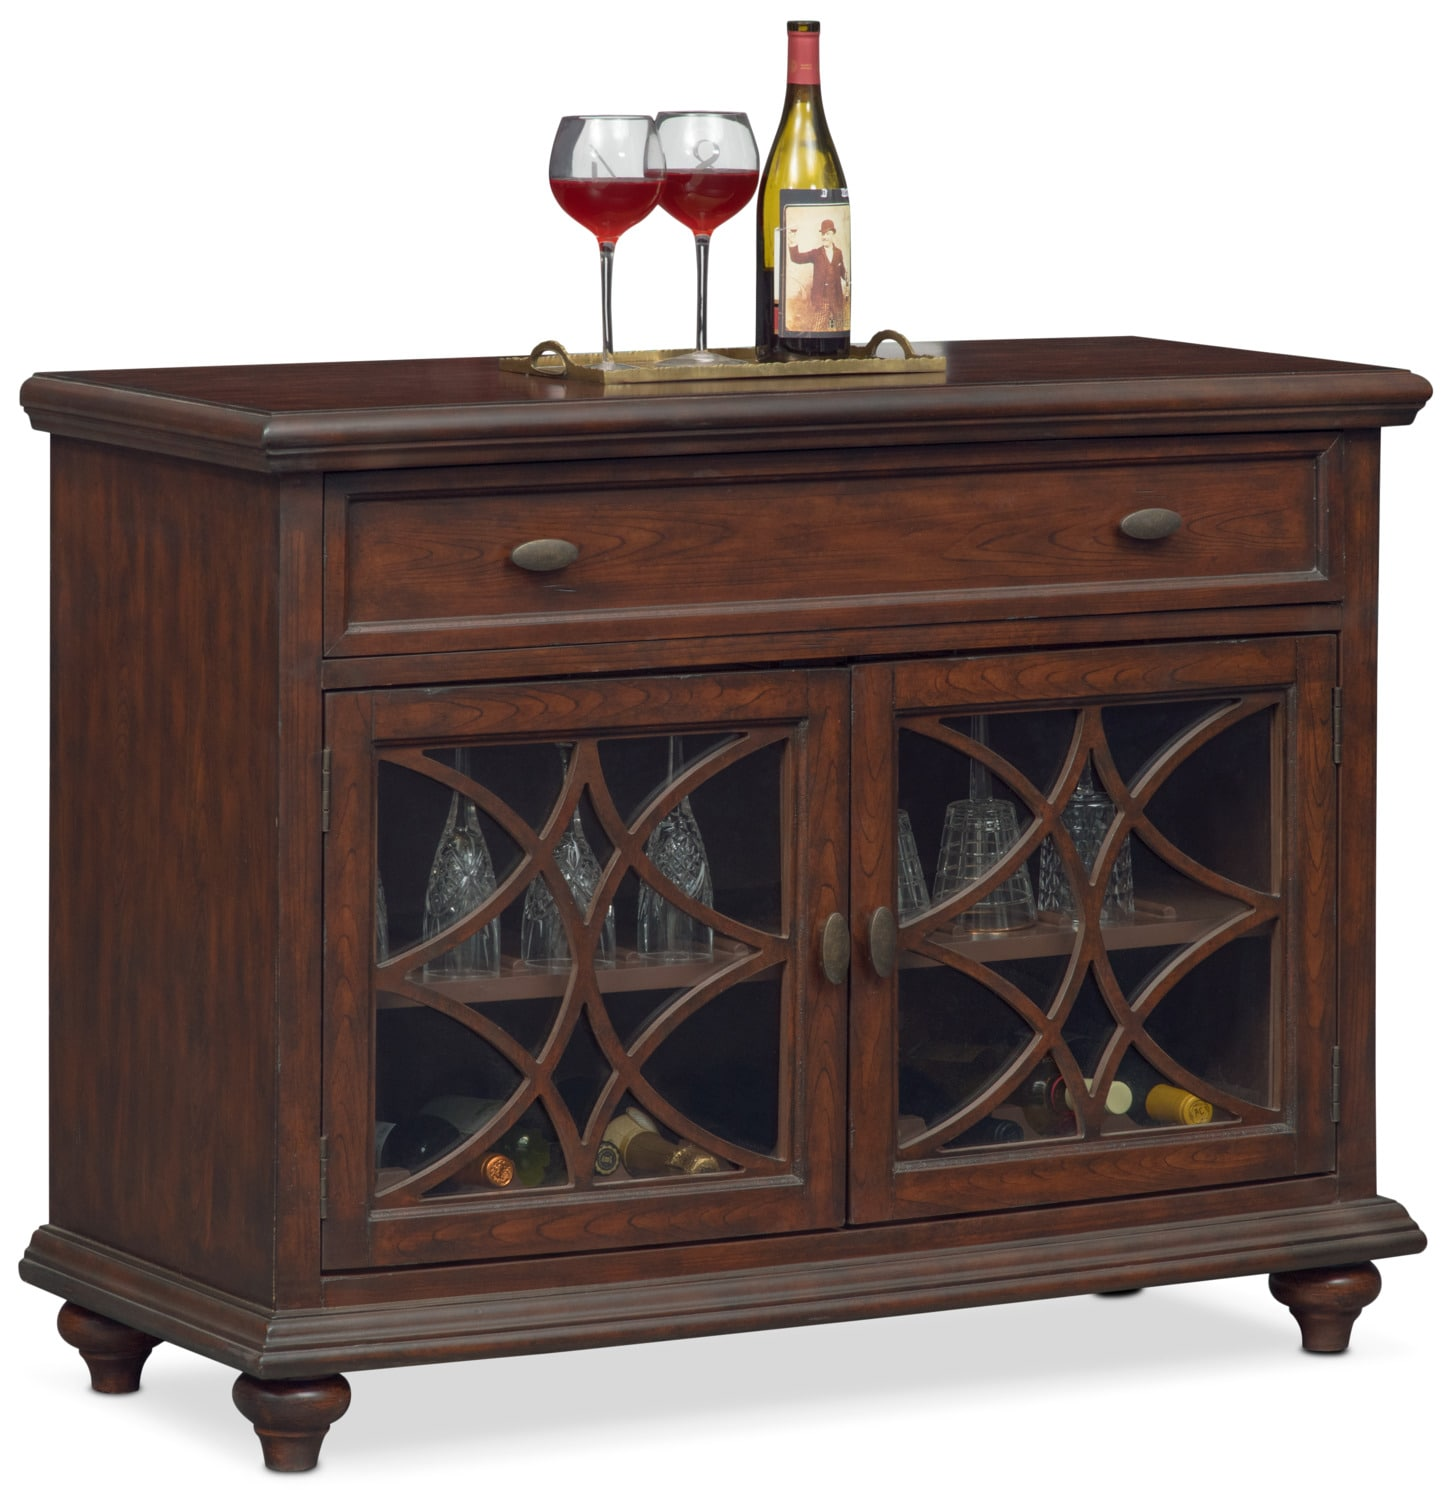 Curio Cabinets Value City Furniture - 28 images - China Cabinets ...